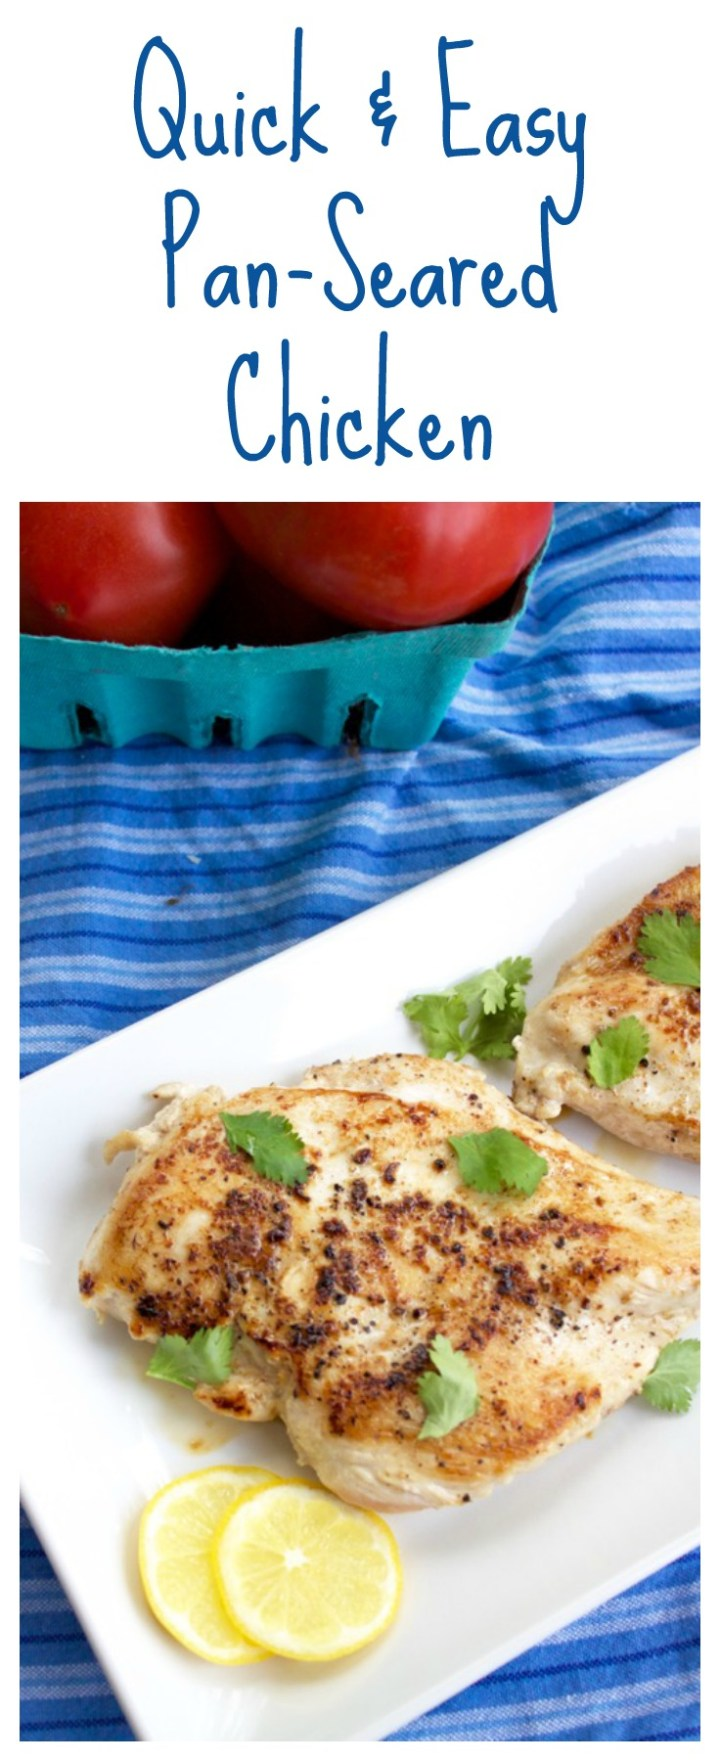 Quick & Easy Pan-Seared Chicken long